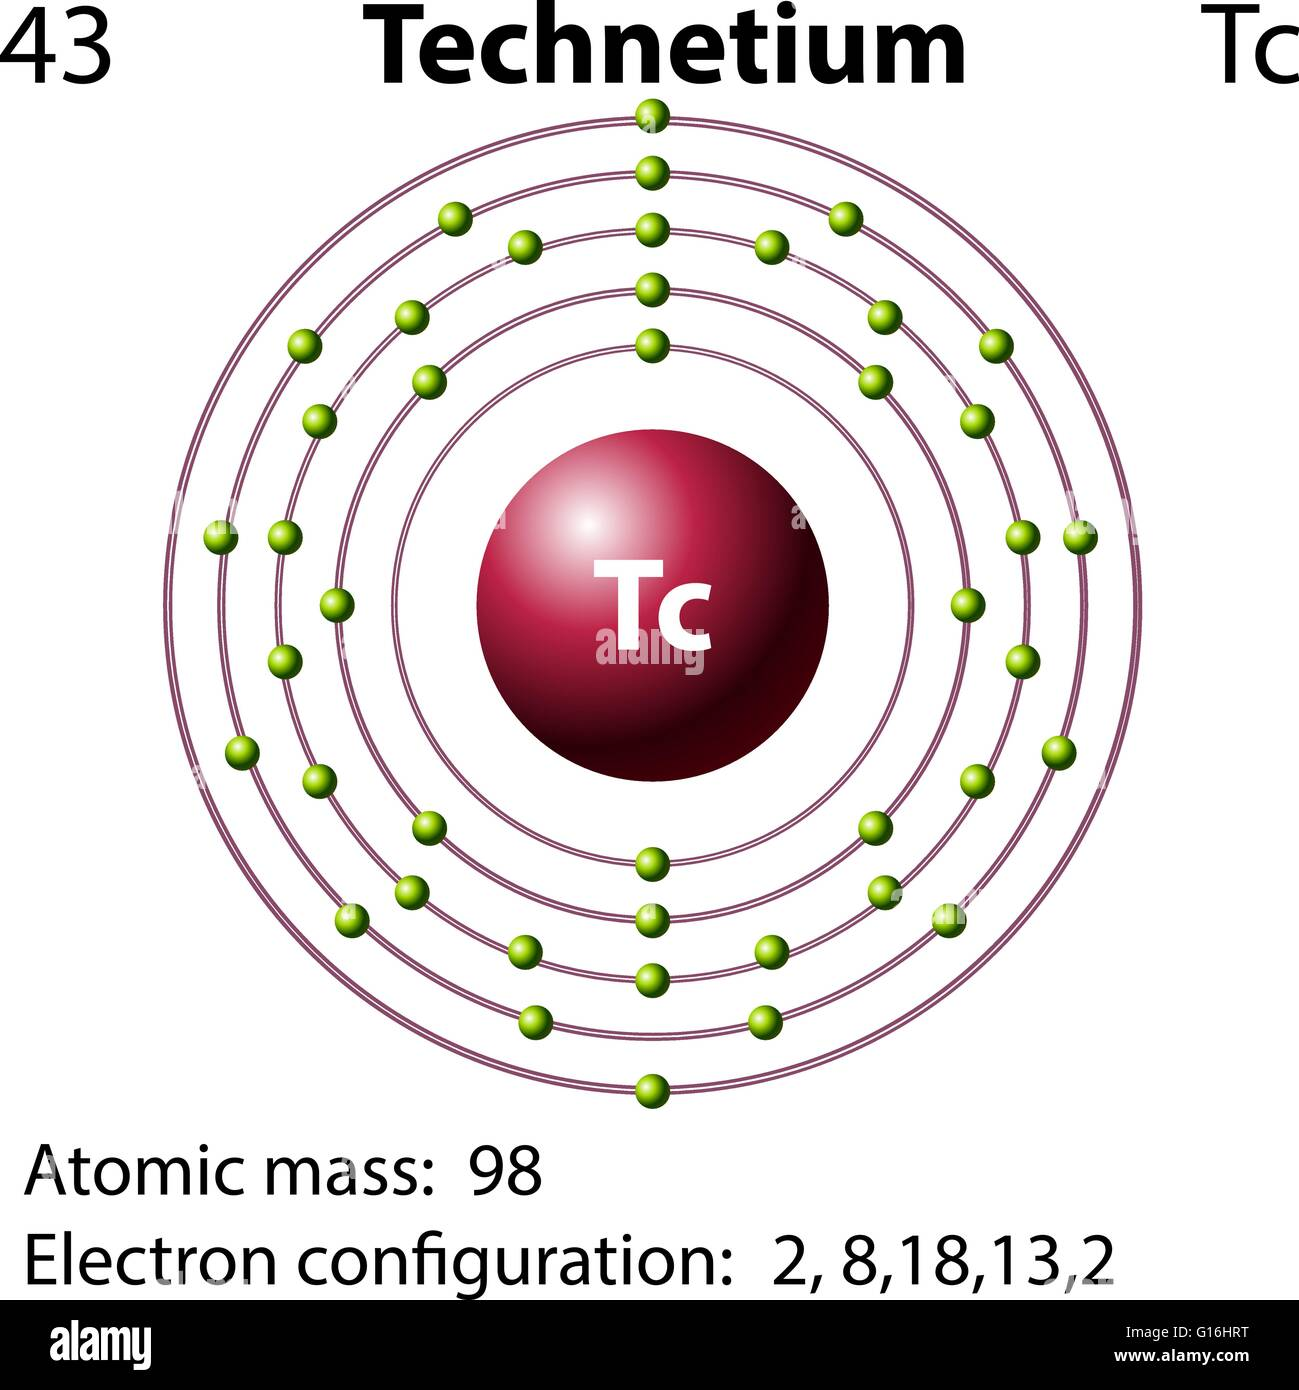 Symbol And Electron Diagram For Technetium Illustration Stock Vector